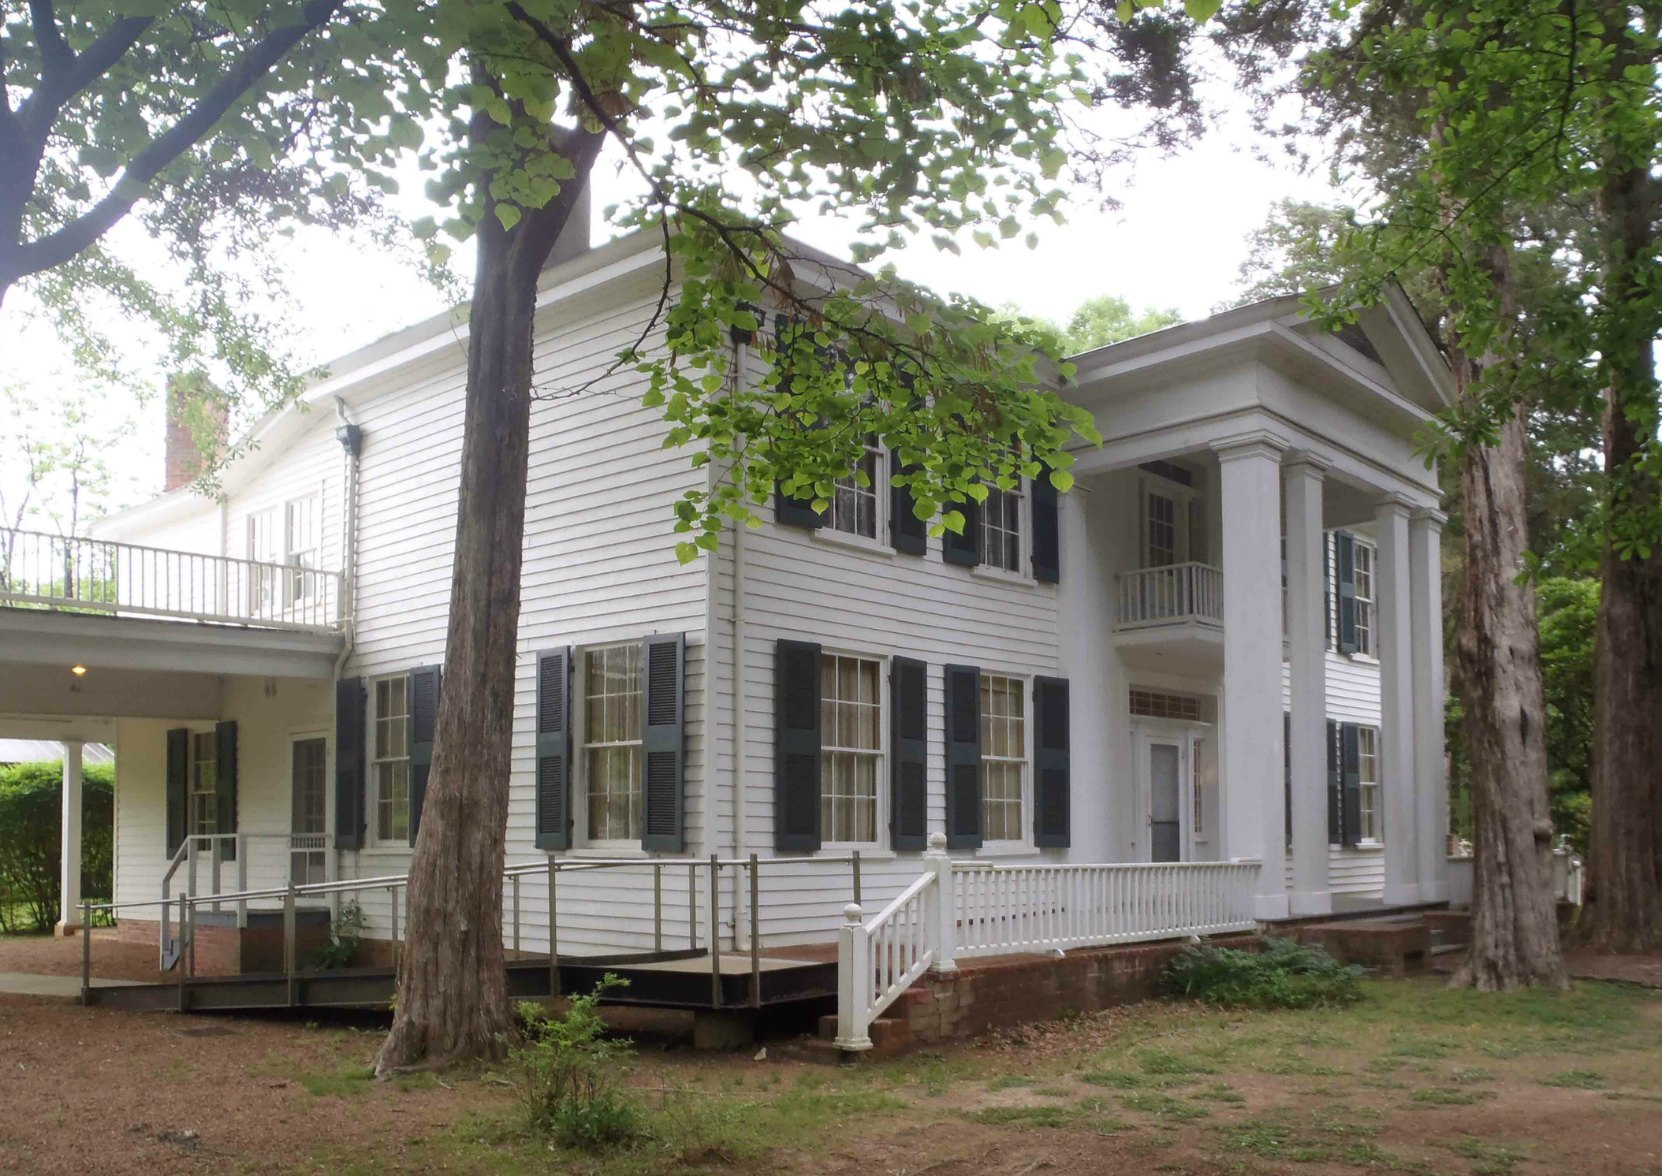 Rowan Oak, William Faulkner's home from 1930 until his death in 1962.